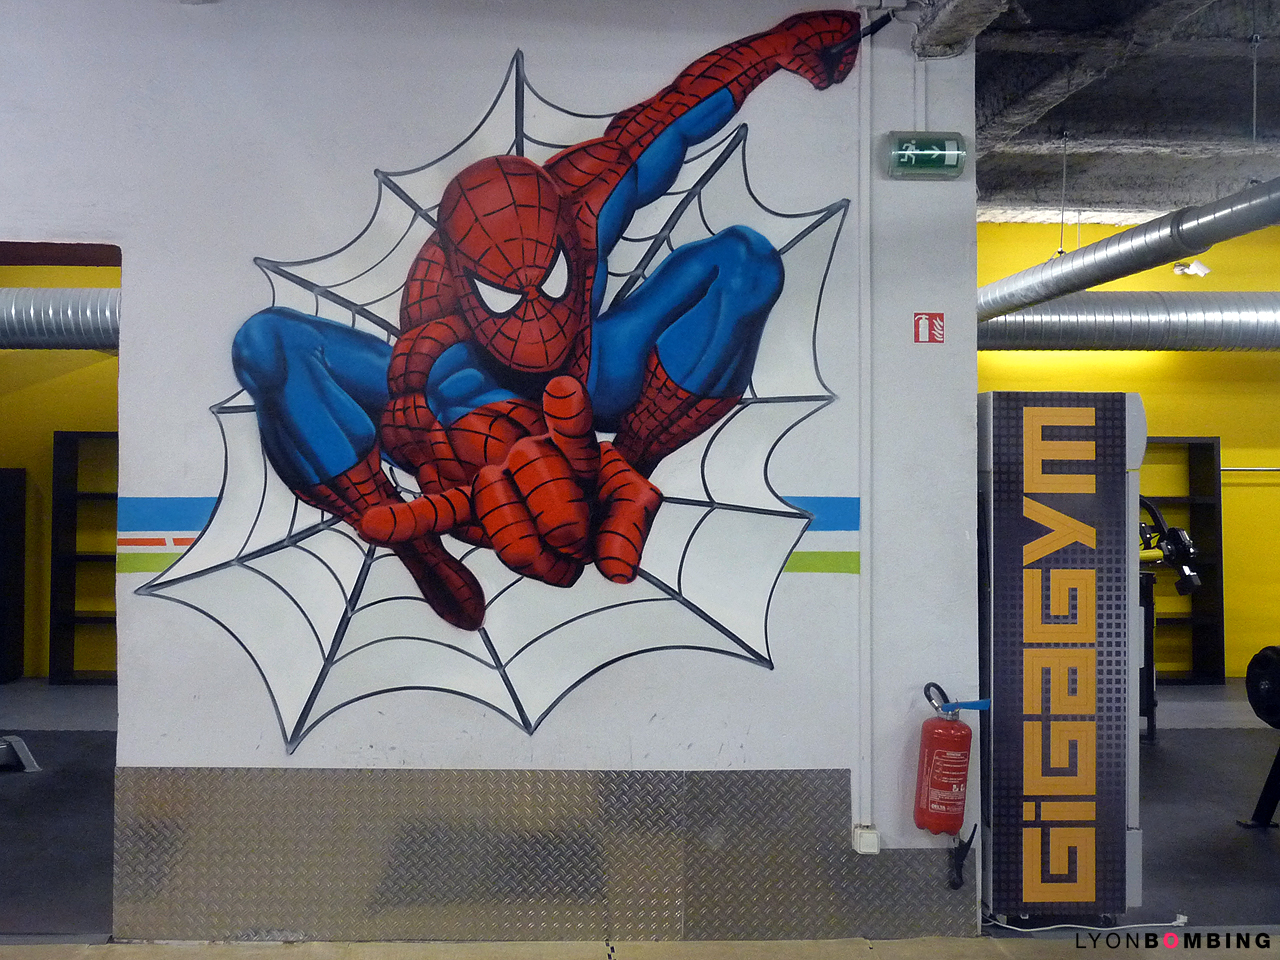 Spiderman graffiti